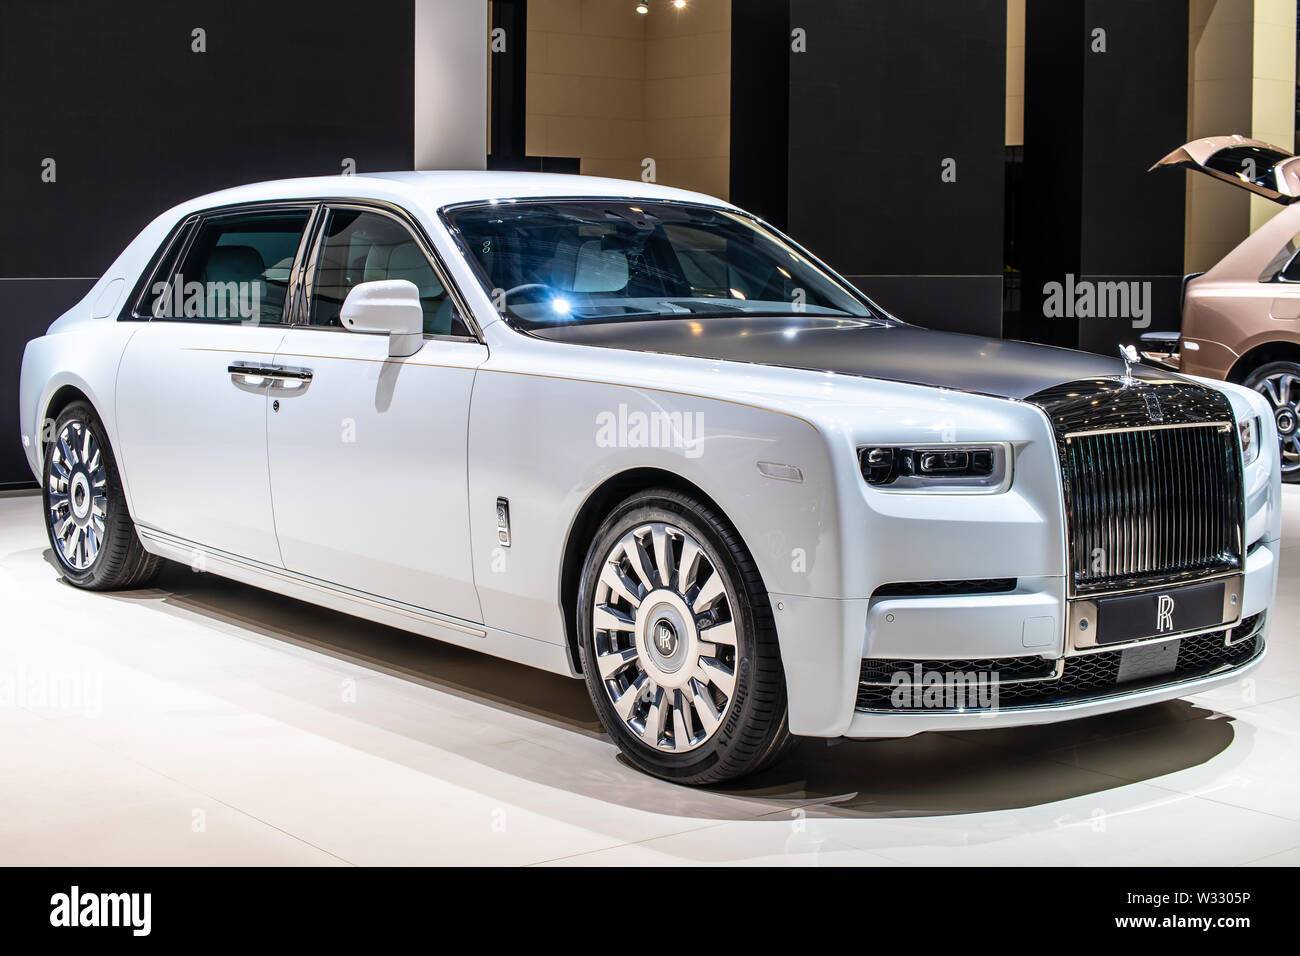 Rolls Royce Phantom High Resolution Stock Photography And Images Alamy